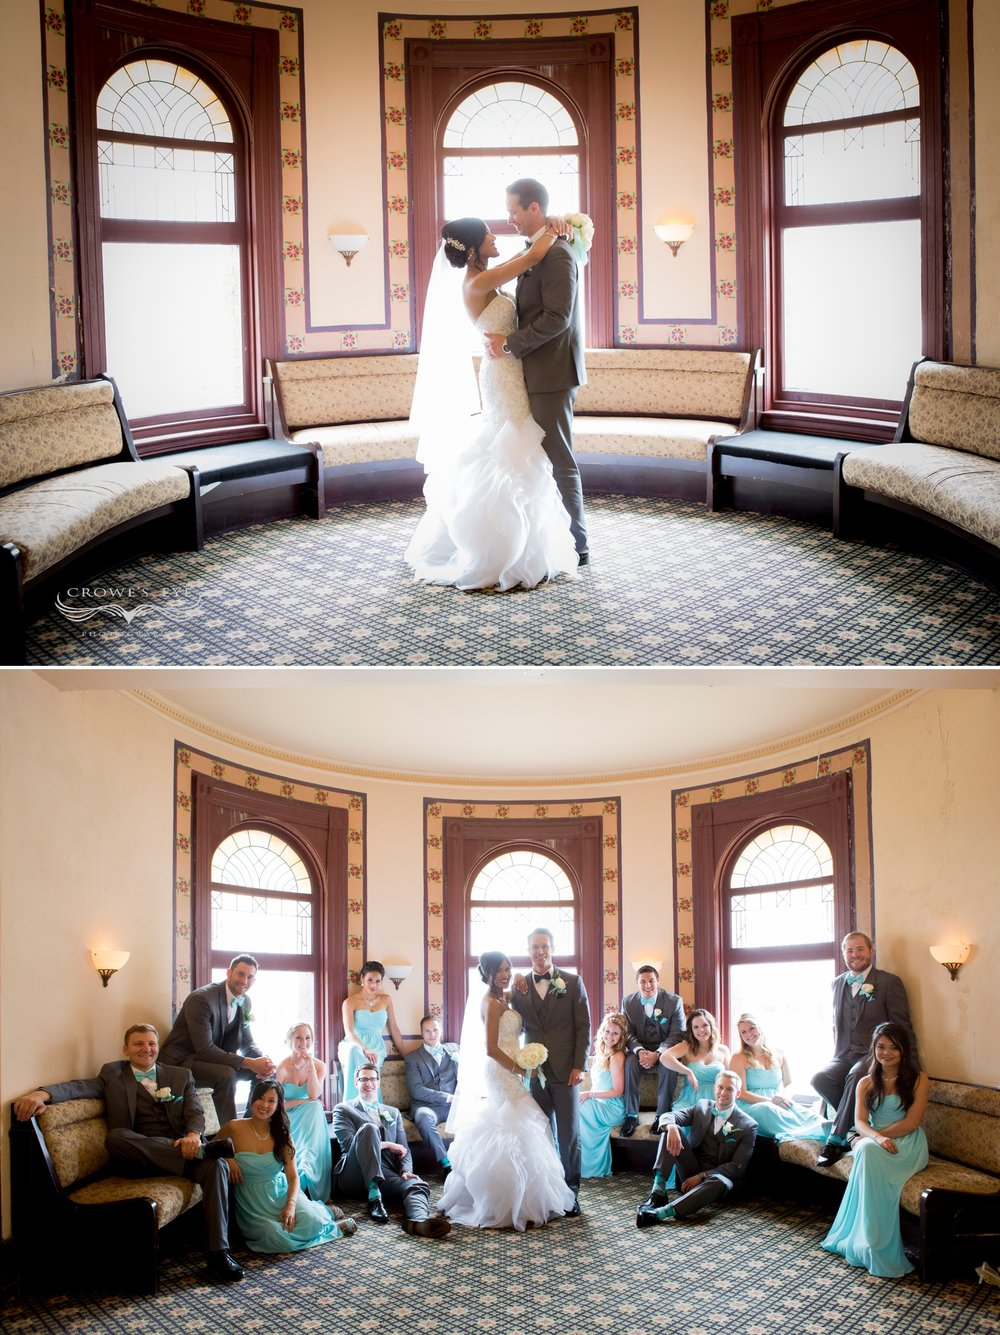 Crowne Plaza Indianapolis Wedding